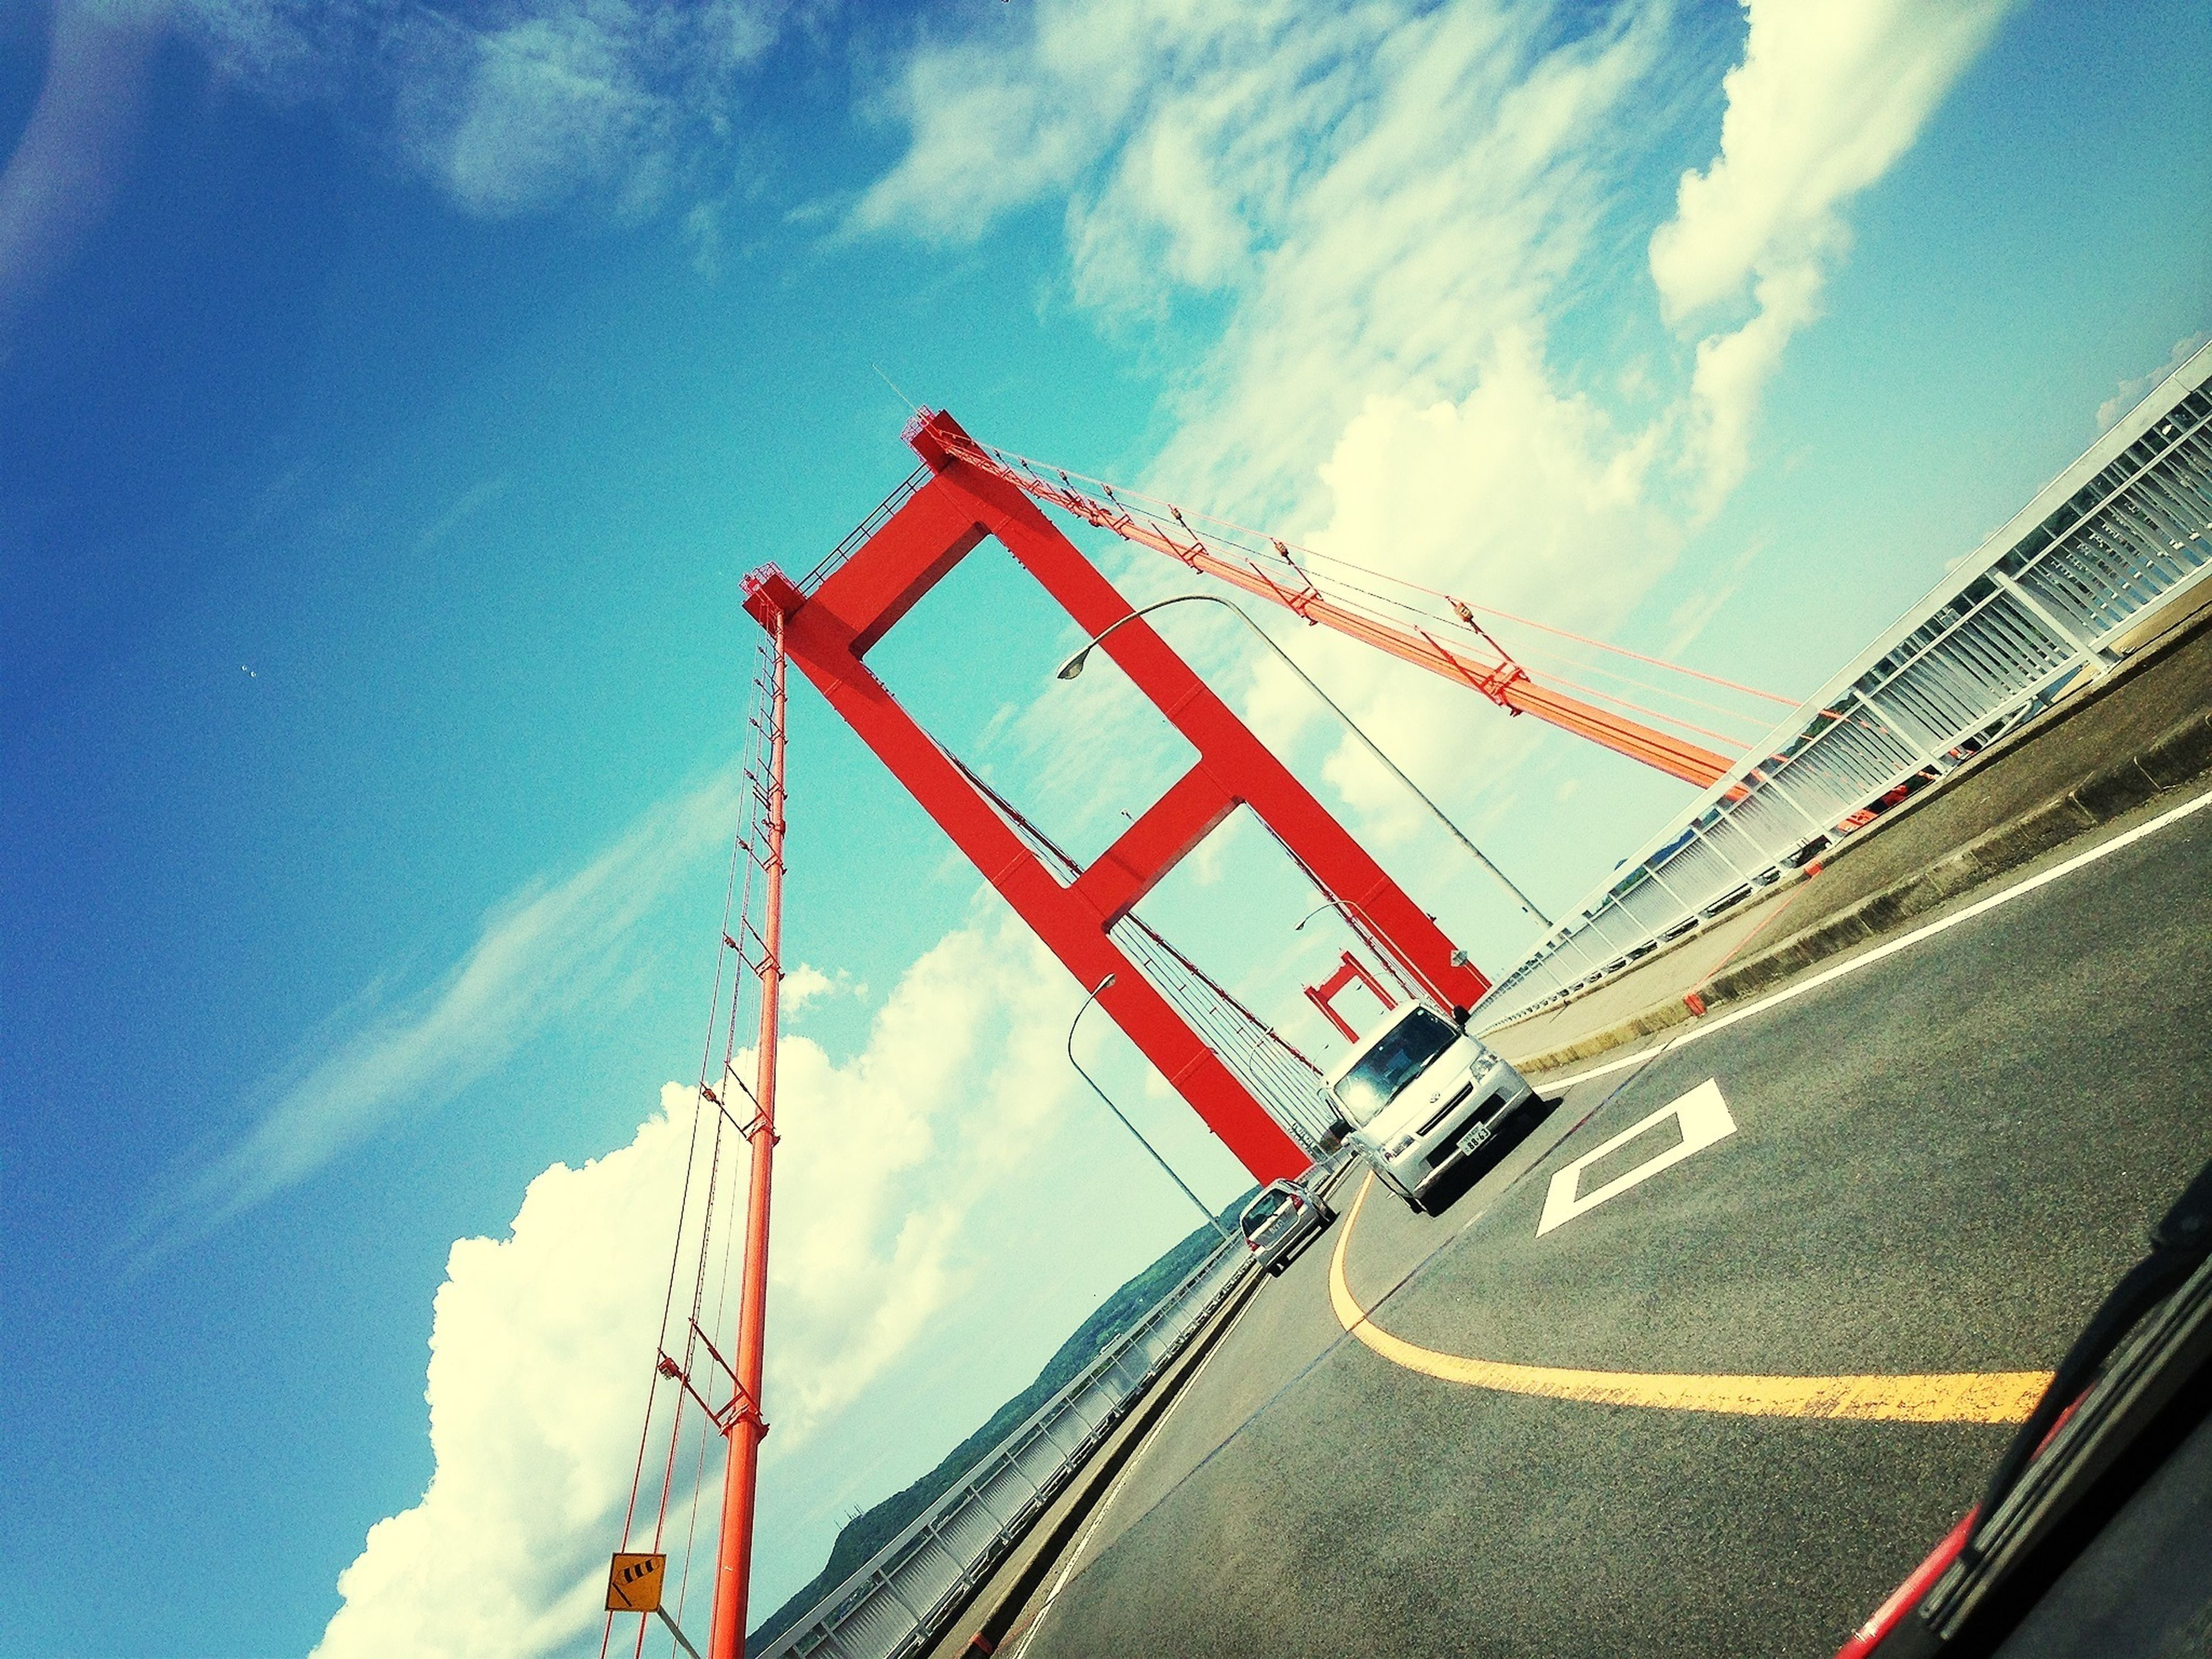 transportation, sky, red, built structure, architecture, cloud - sky, low angle view, mode of transport, bridge - man made structure, connection, day, cloud, outdoors, railing, flag, no people, travel, road, engineering, blue